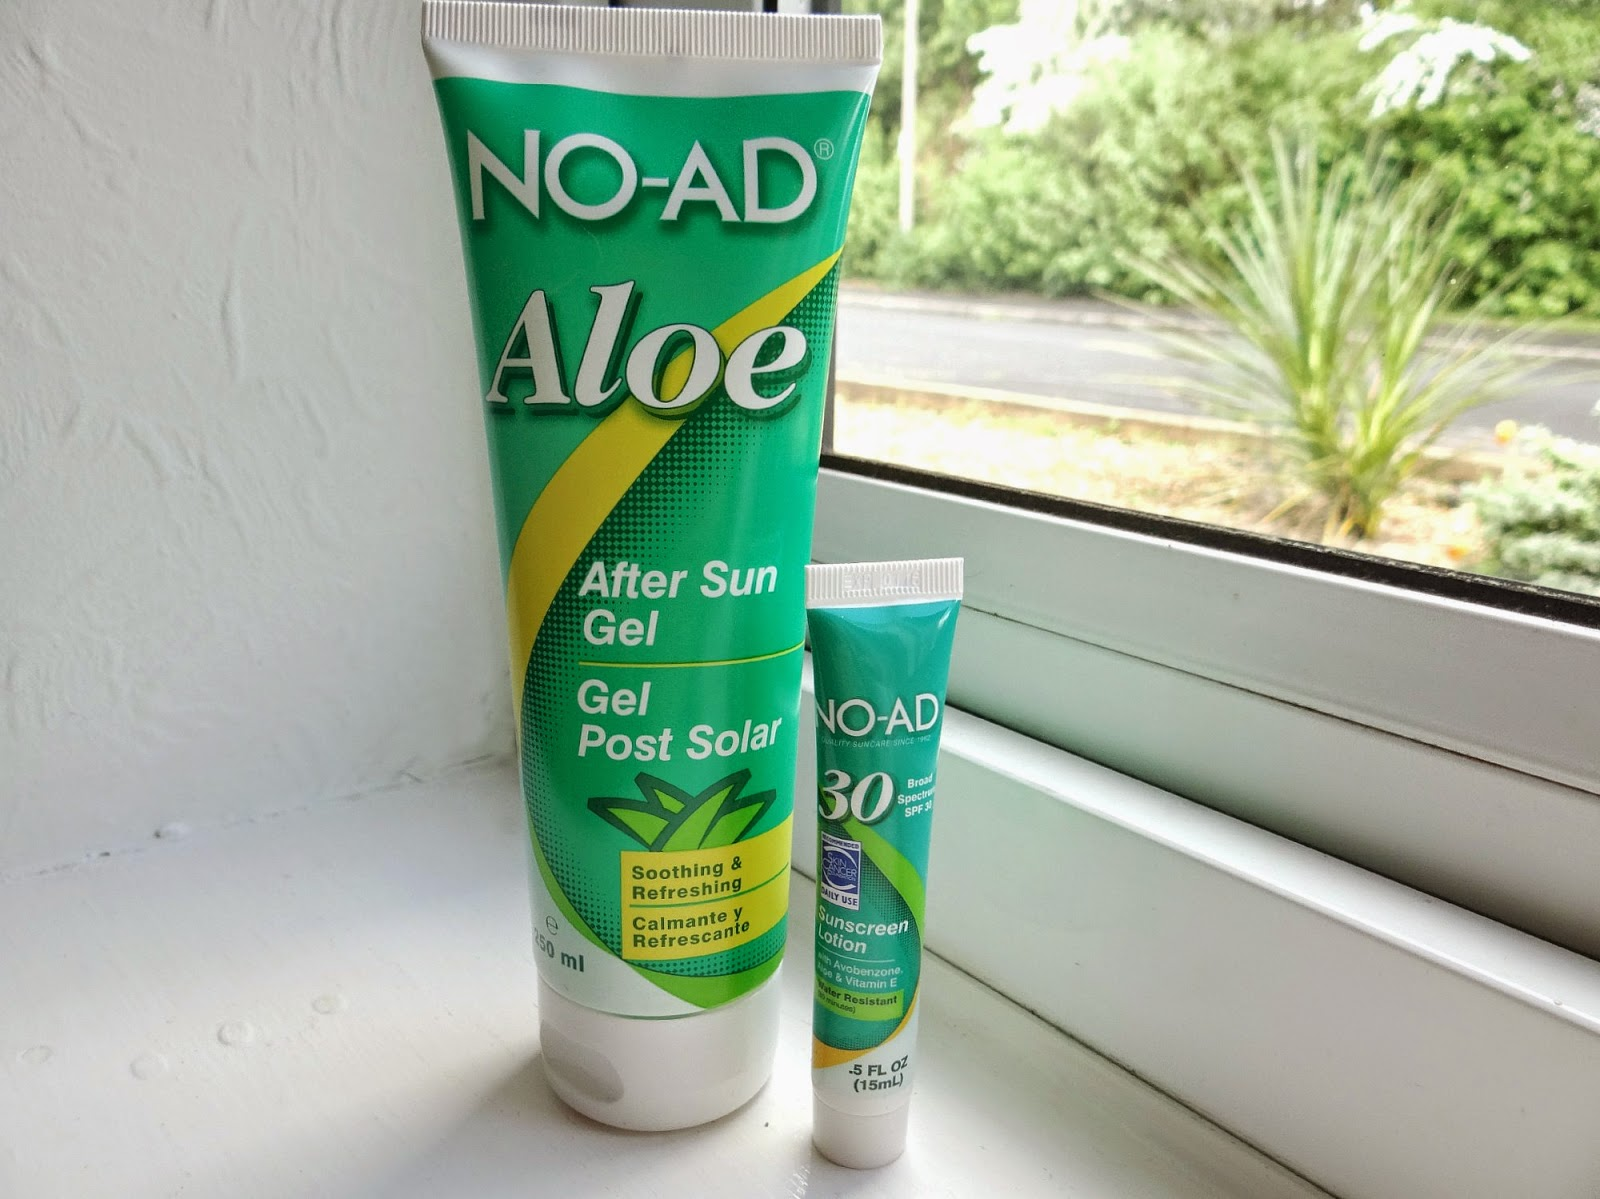 Aloe Vera, After Sun Gel, No-Ad tanning product